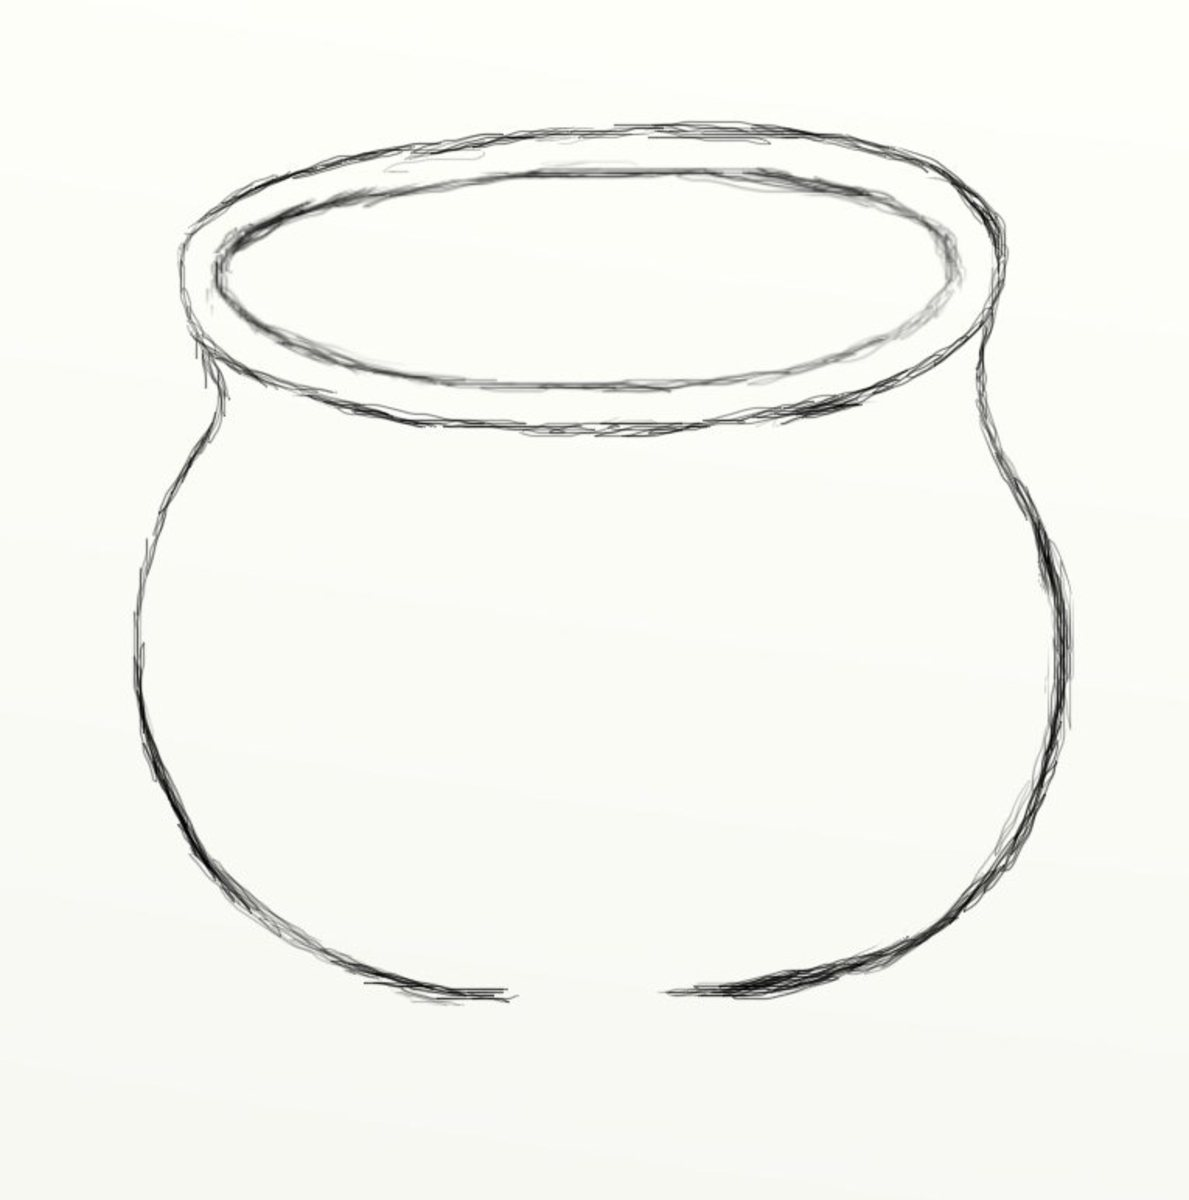 images for drawing